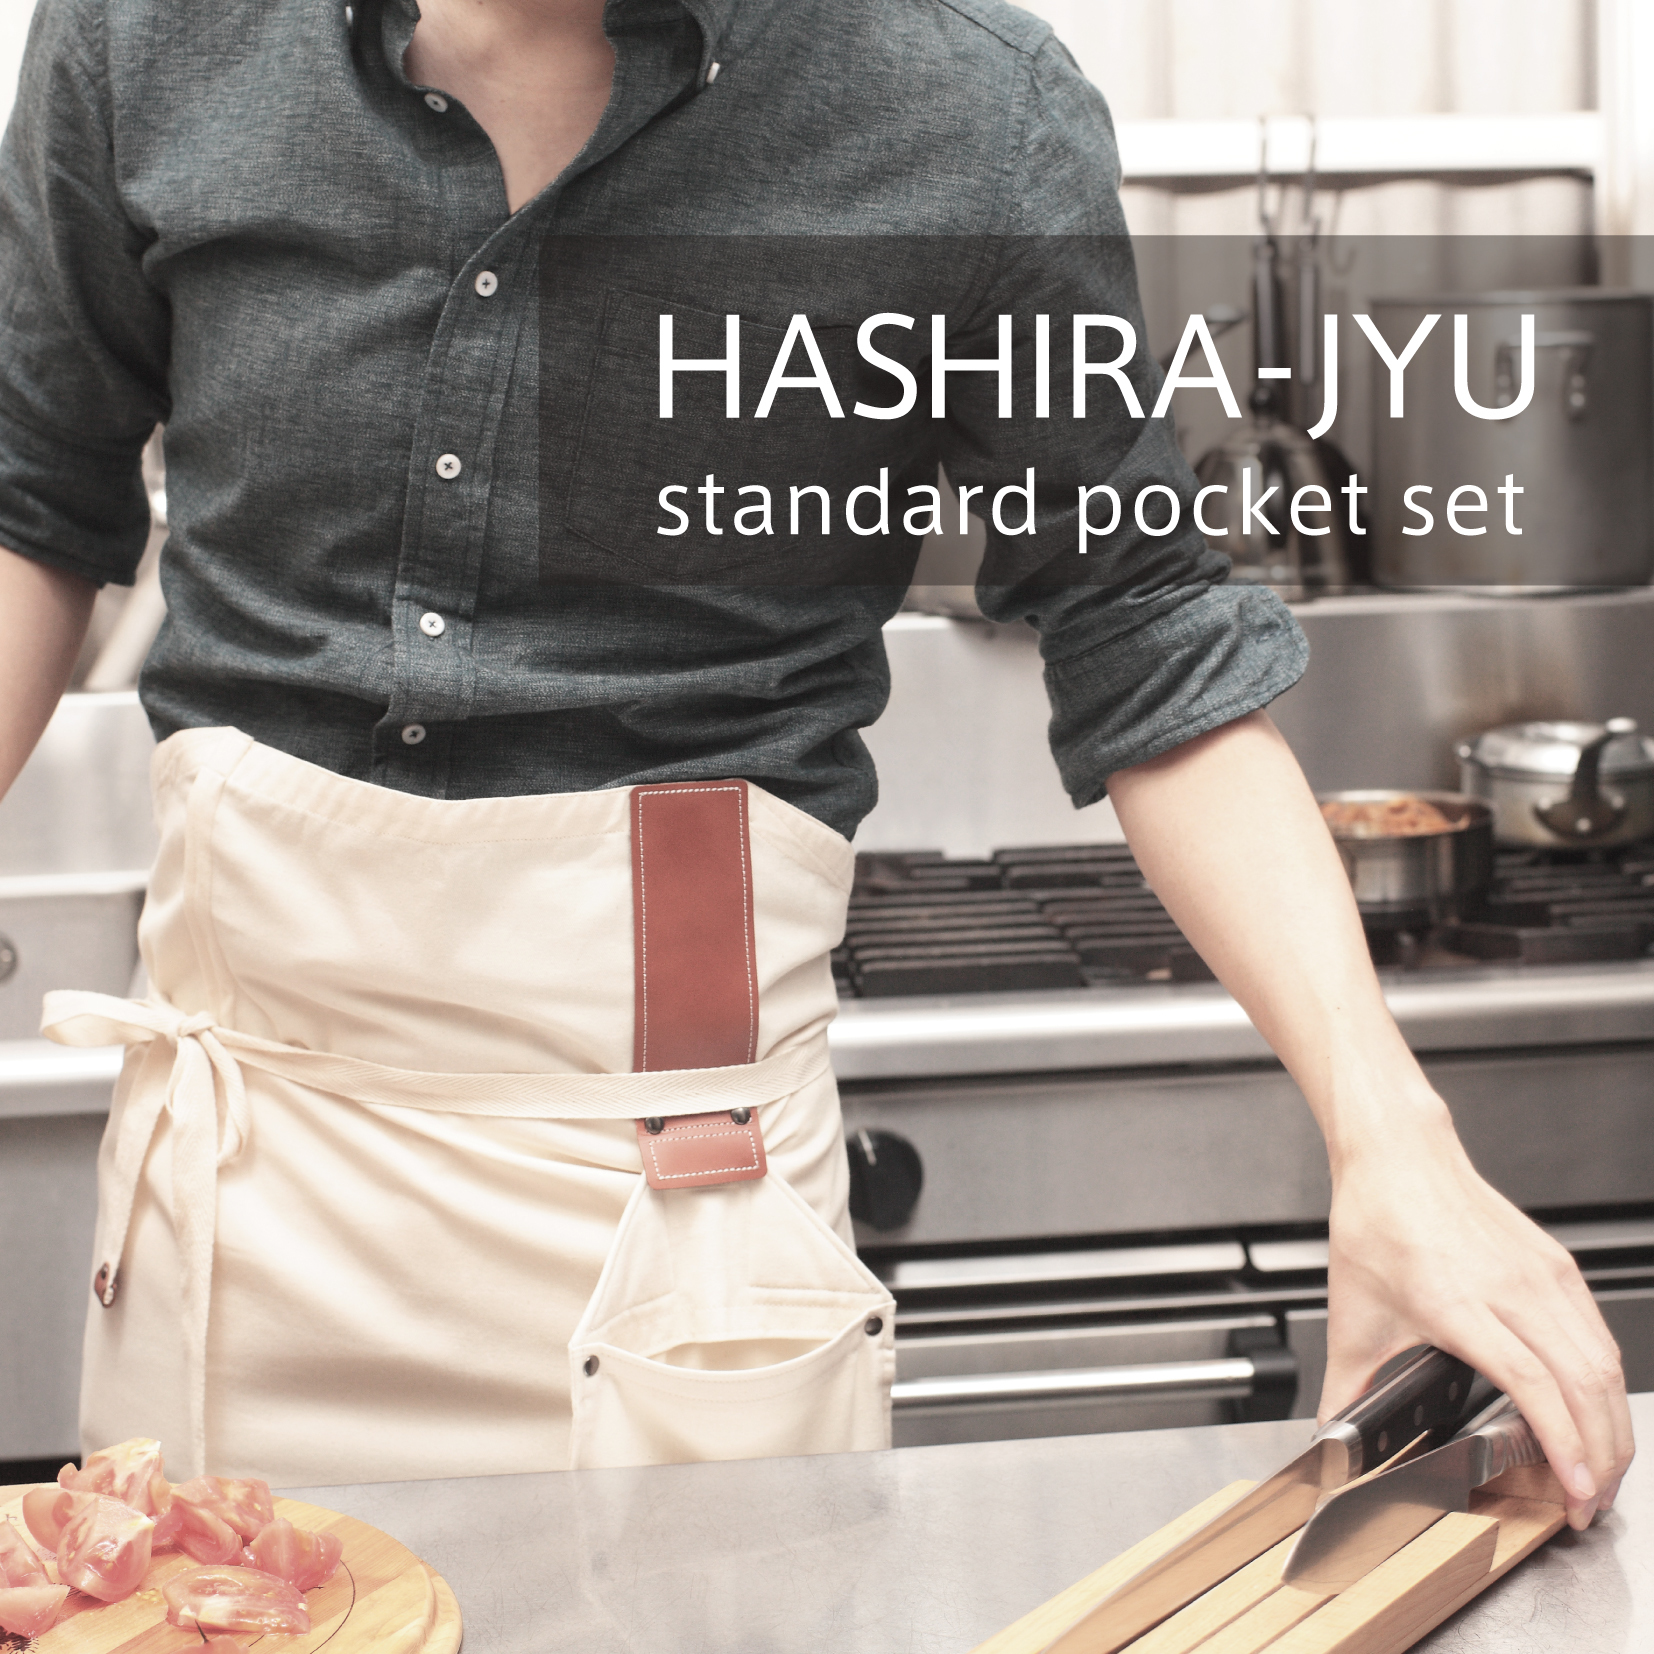 HASHIRA-JYU standard pocket set